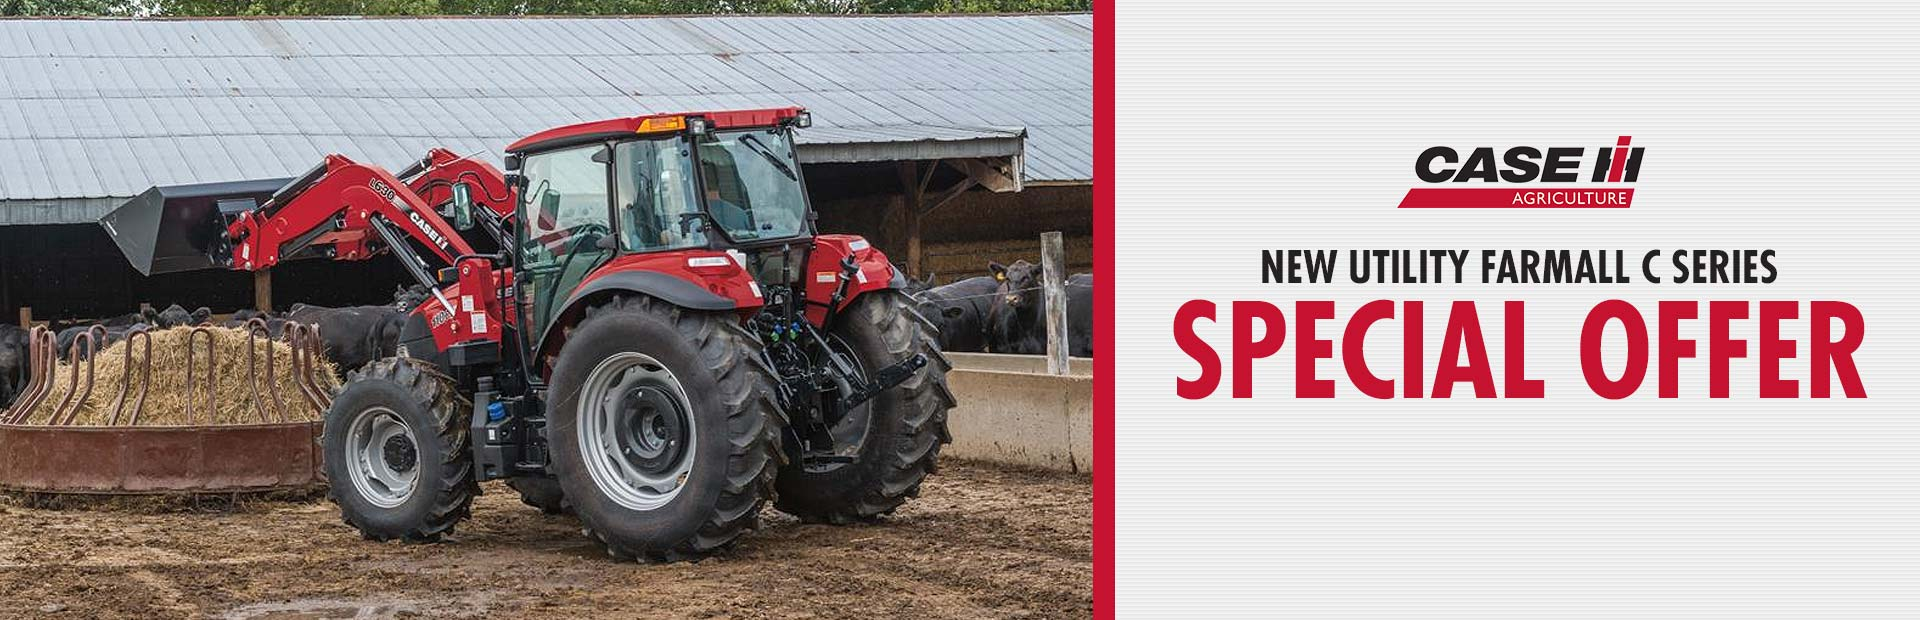 New Utility Farmall C Series Special Offer